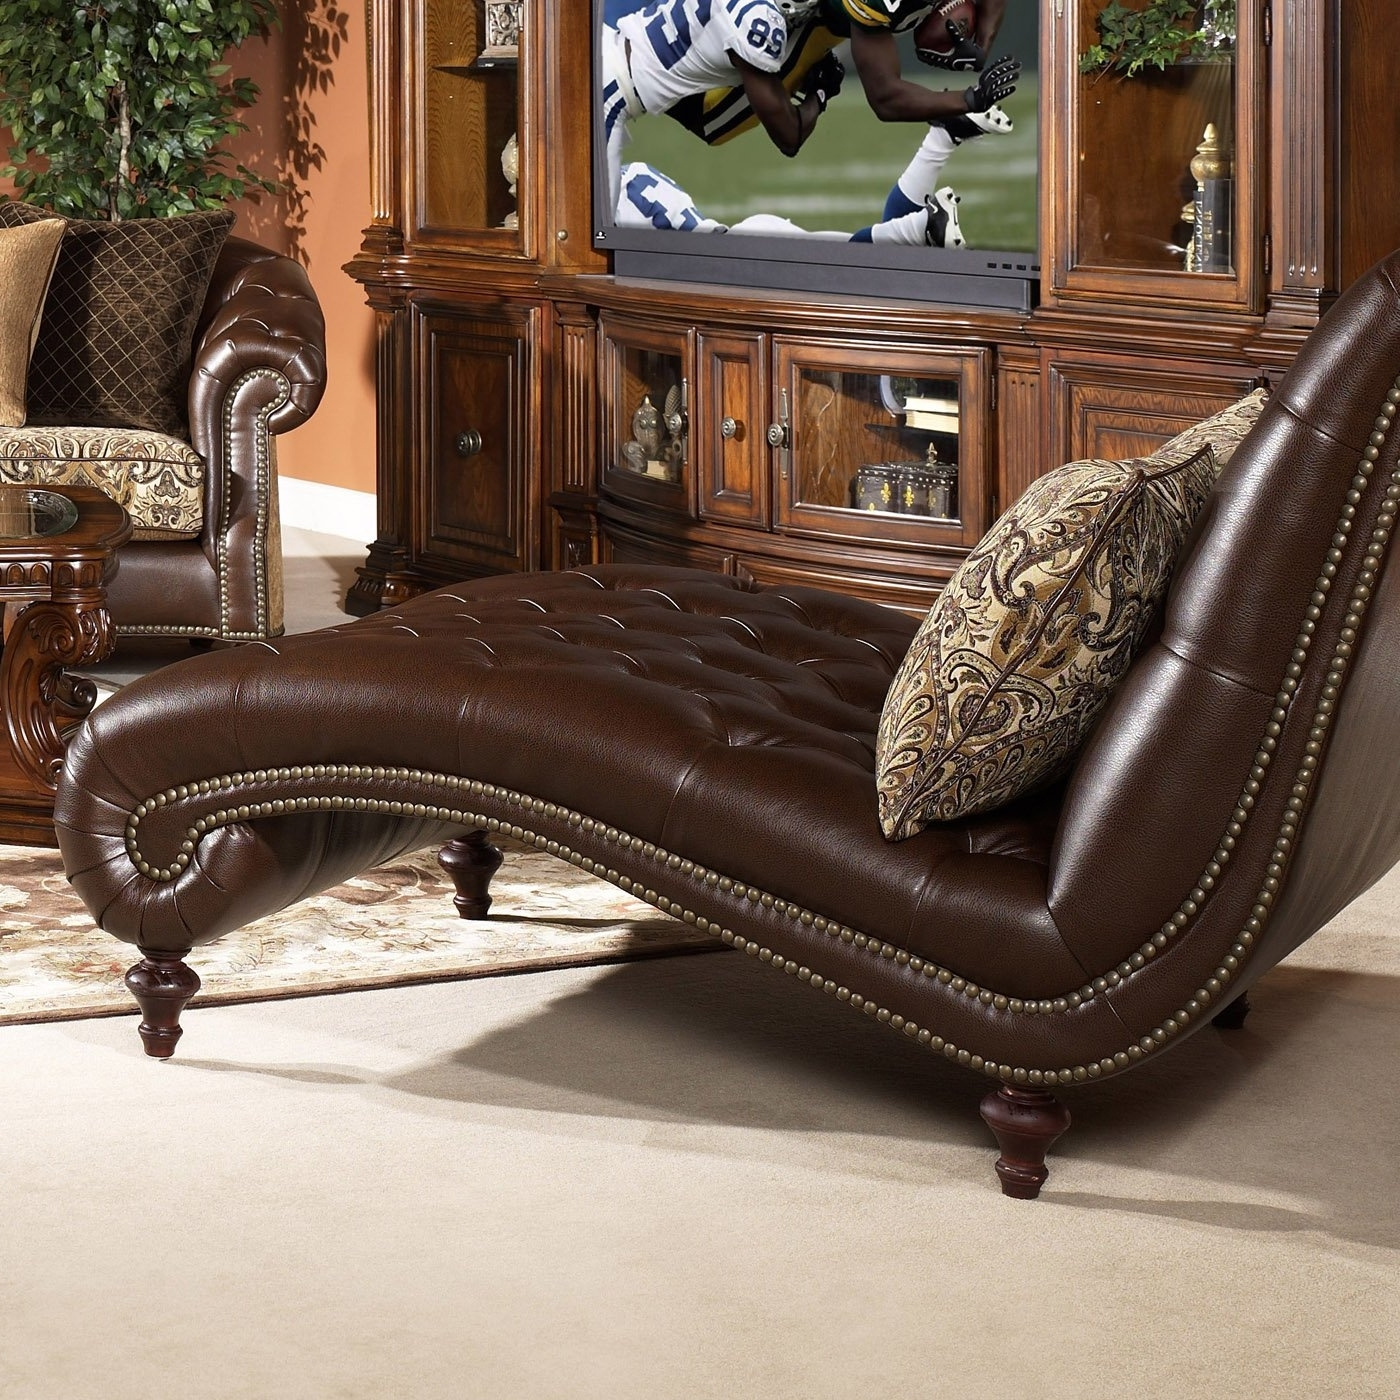 Extra Wide Chaise Lounges Intended For Widely Used Top Leather Chaise Lounge Chair — Bed And Shower : Repair A (View 4 of 15)